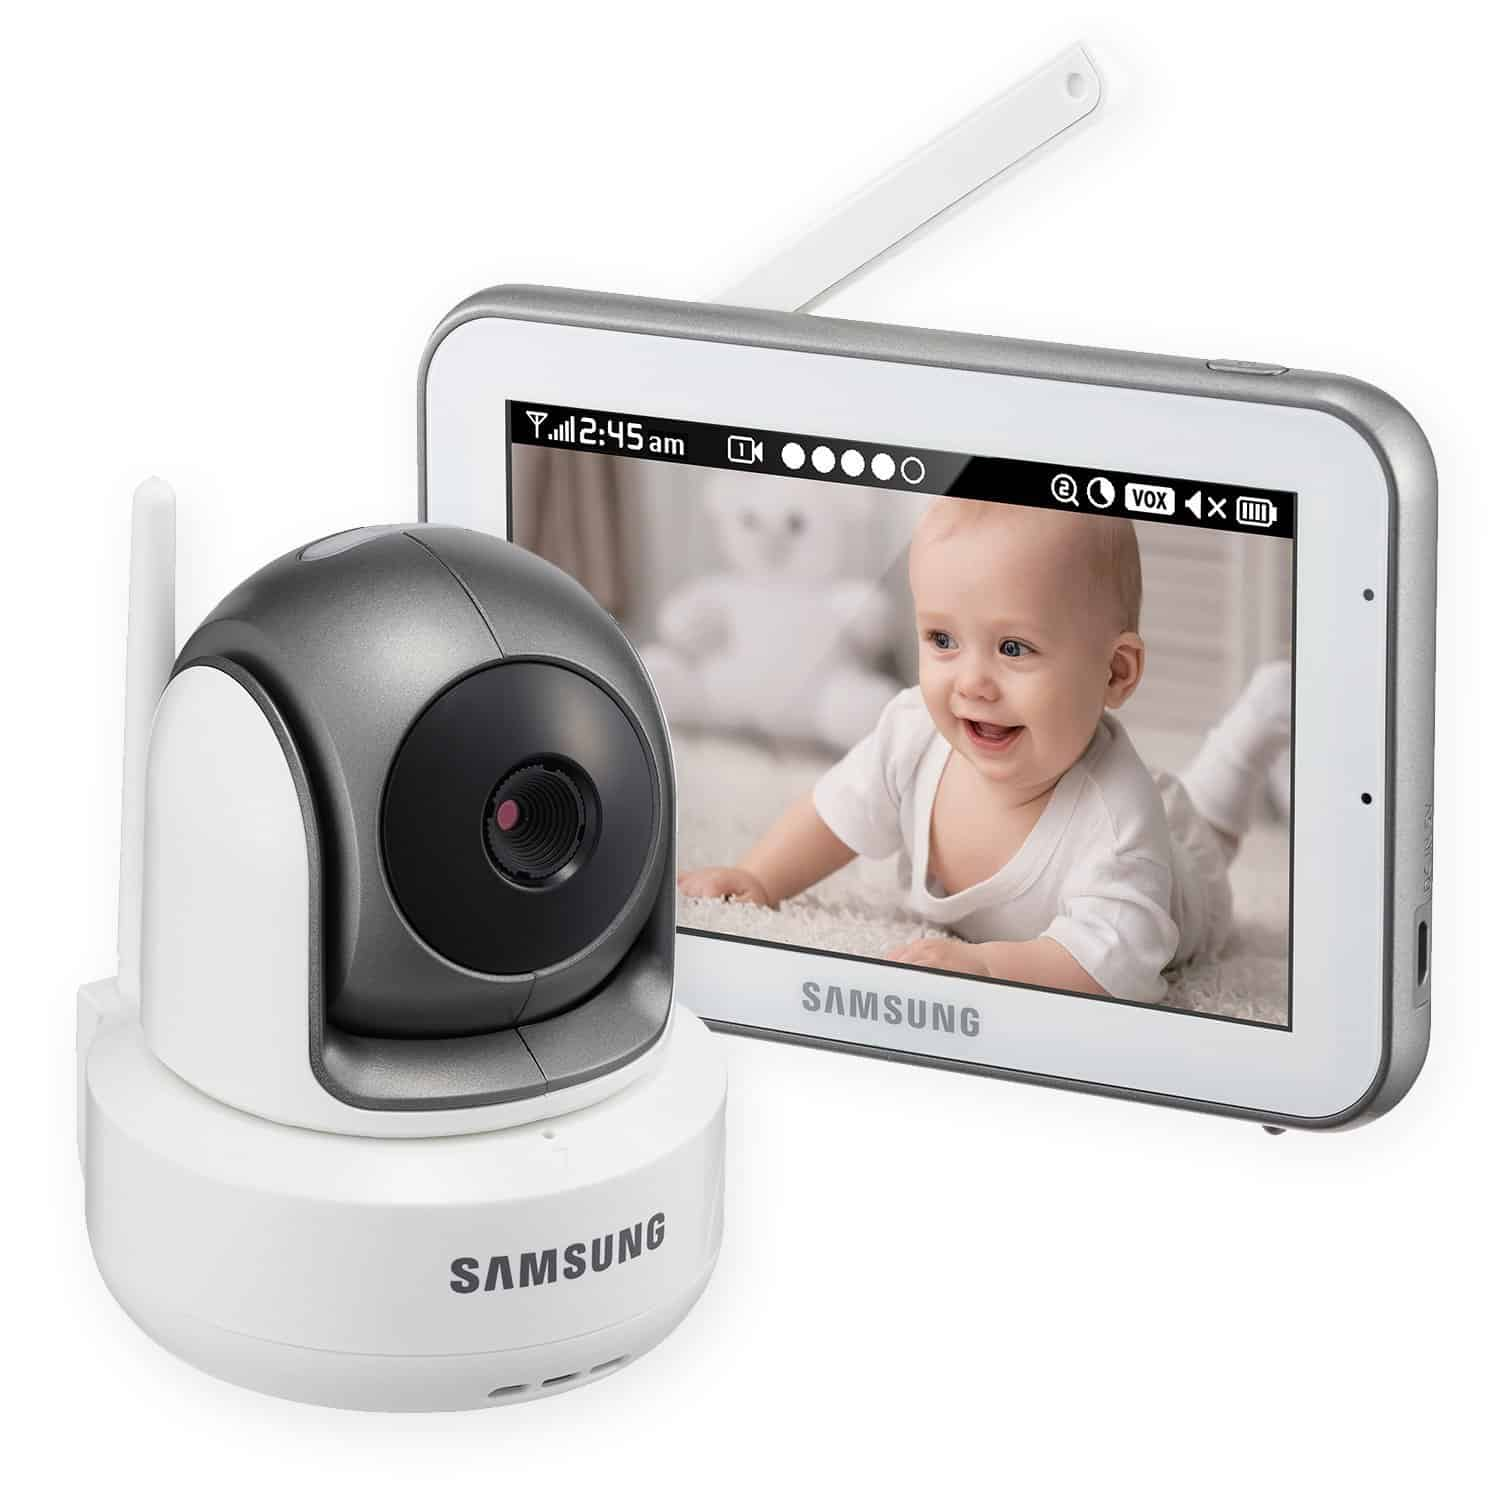 Video Baby Monitor review: Samsung / Wisenet